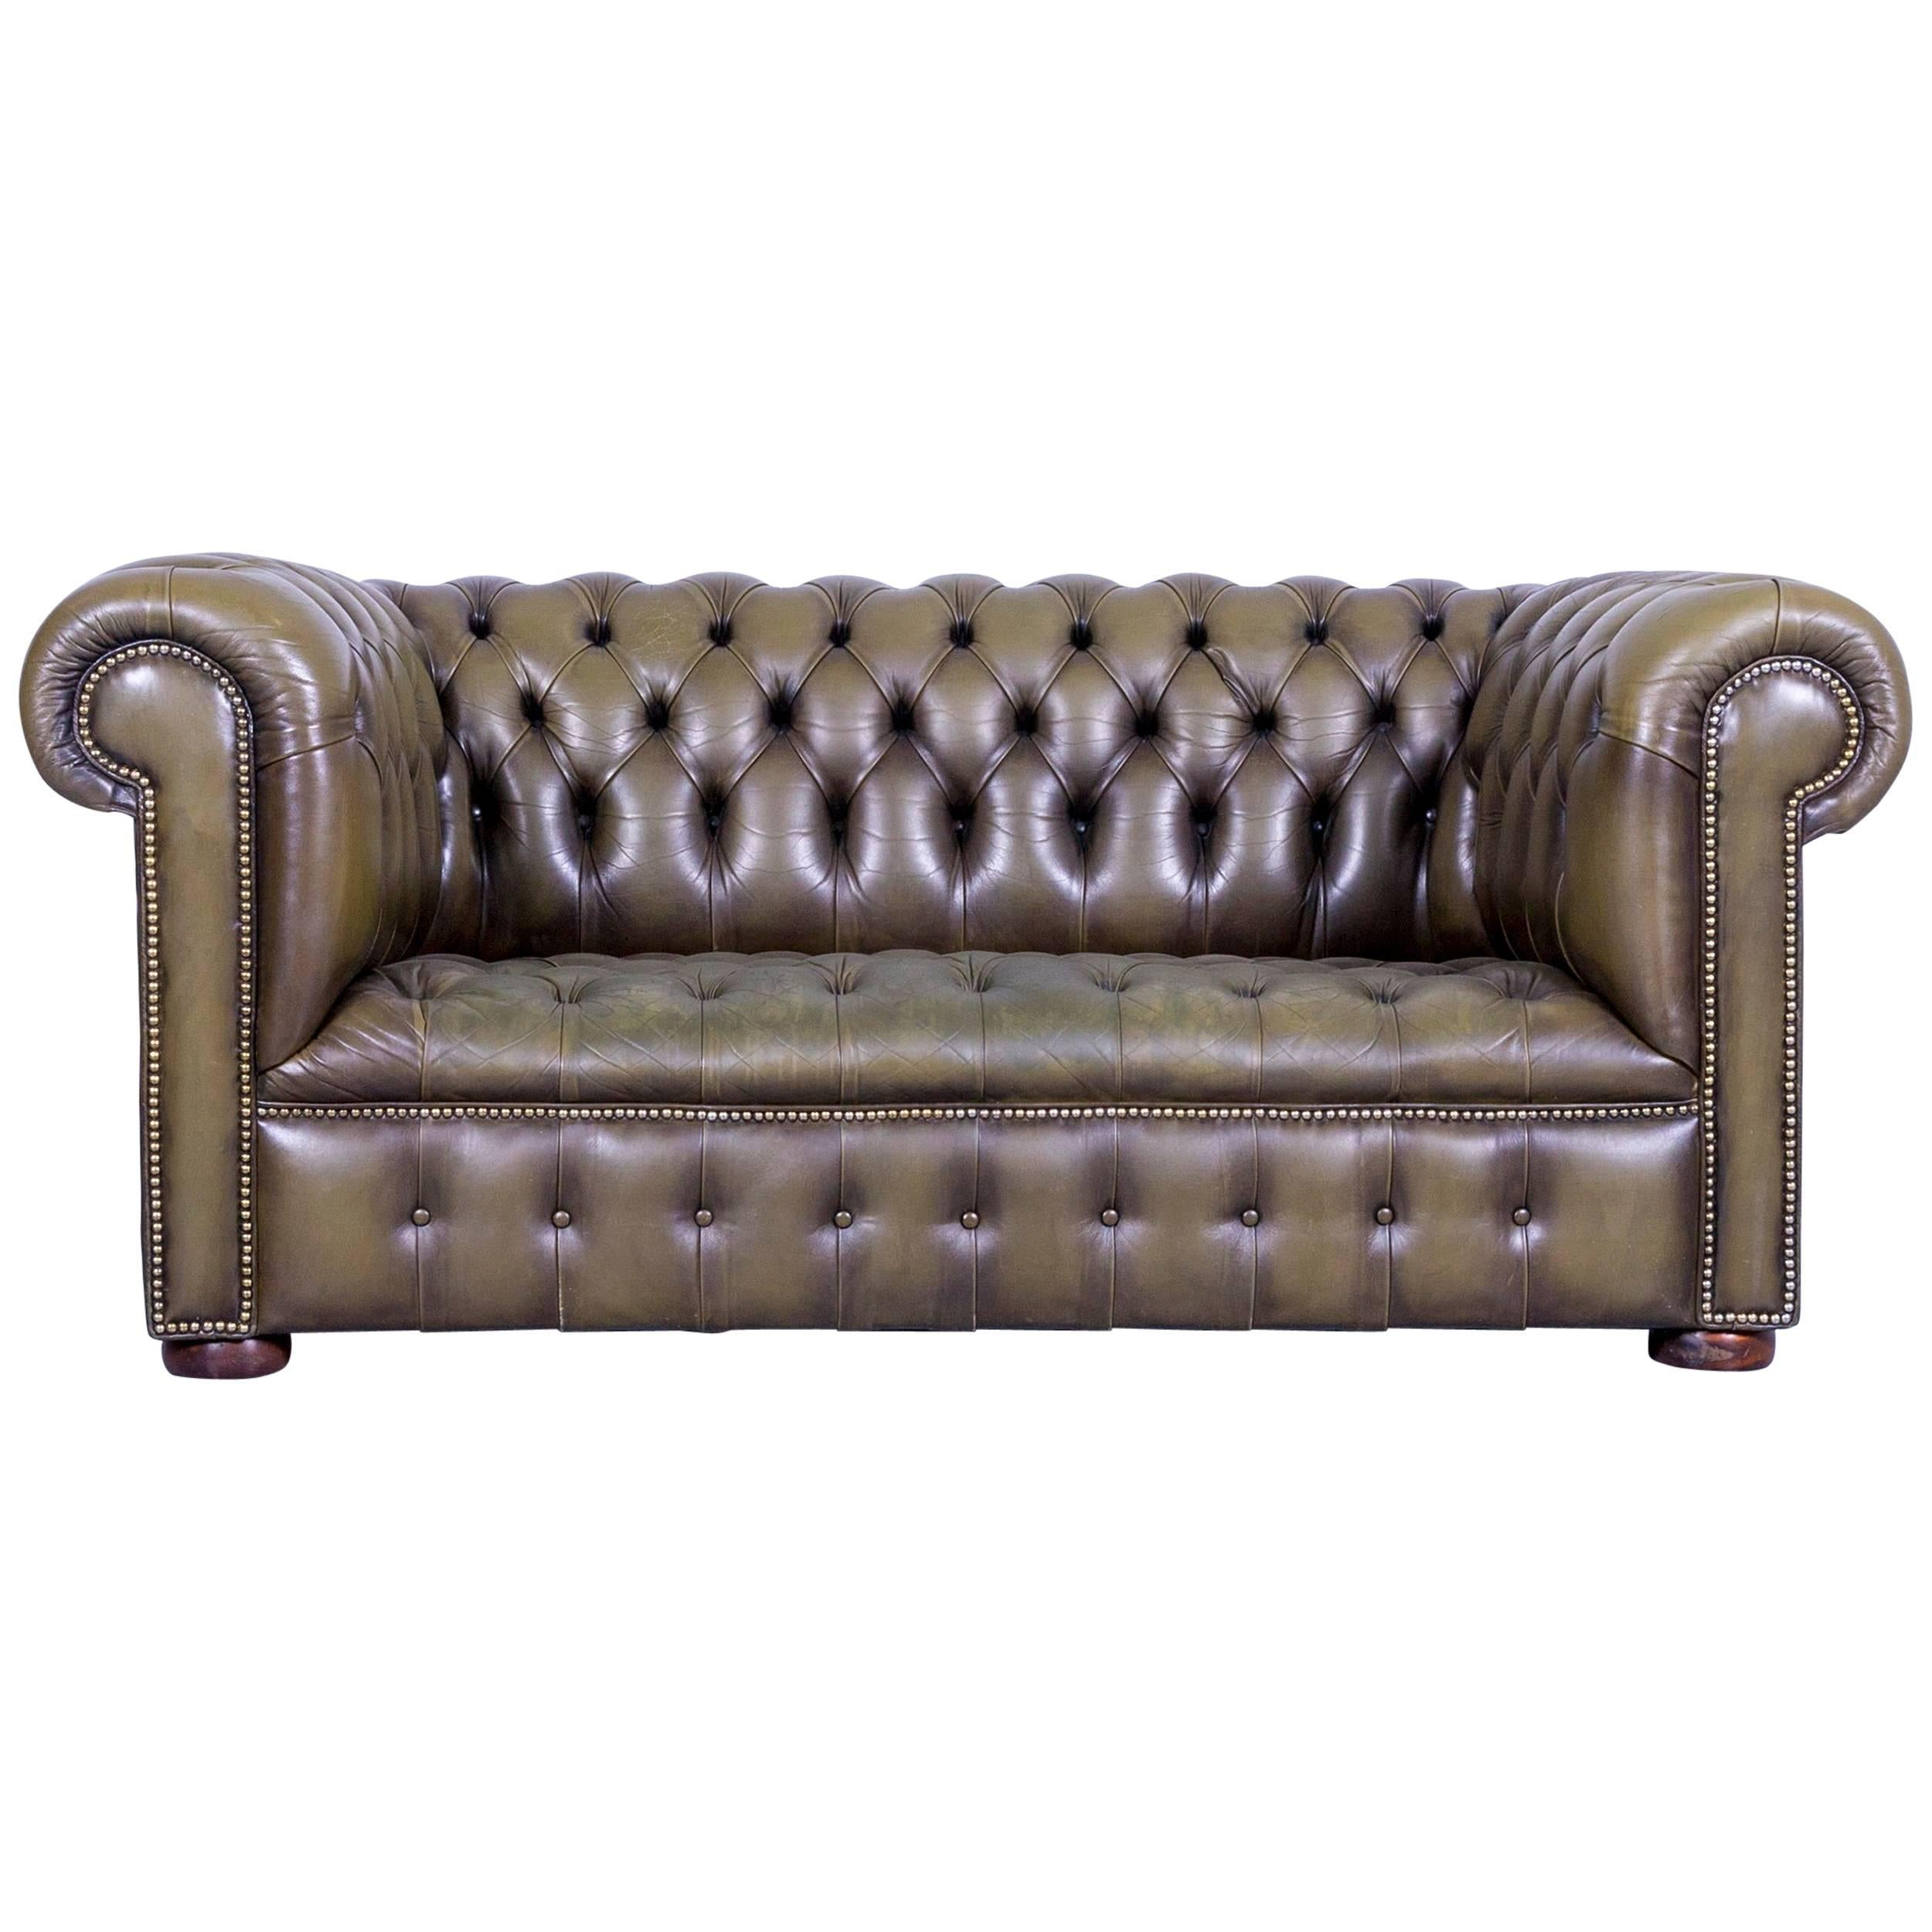 Chesterfield Leather Sofa Olive Green Couch Vintage Two Seat For Sale